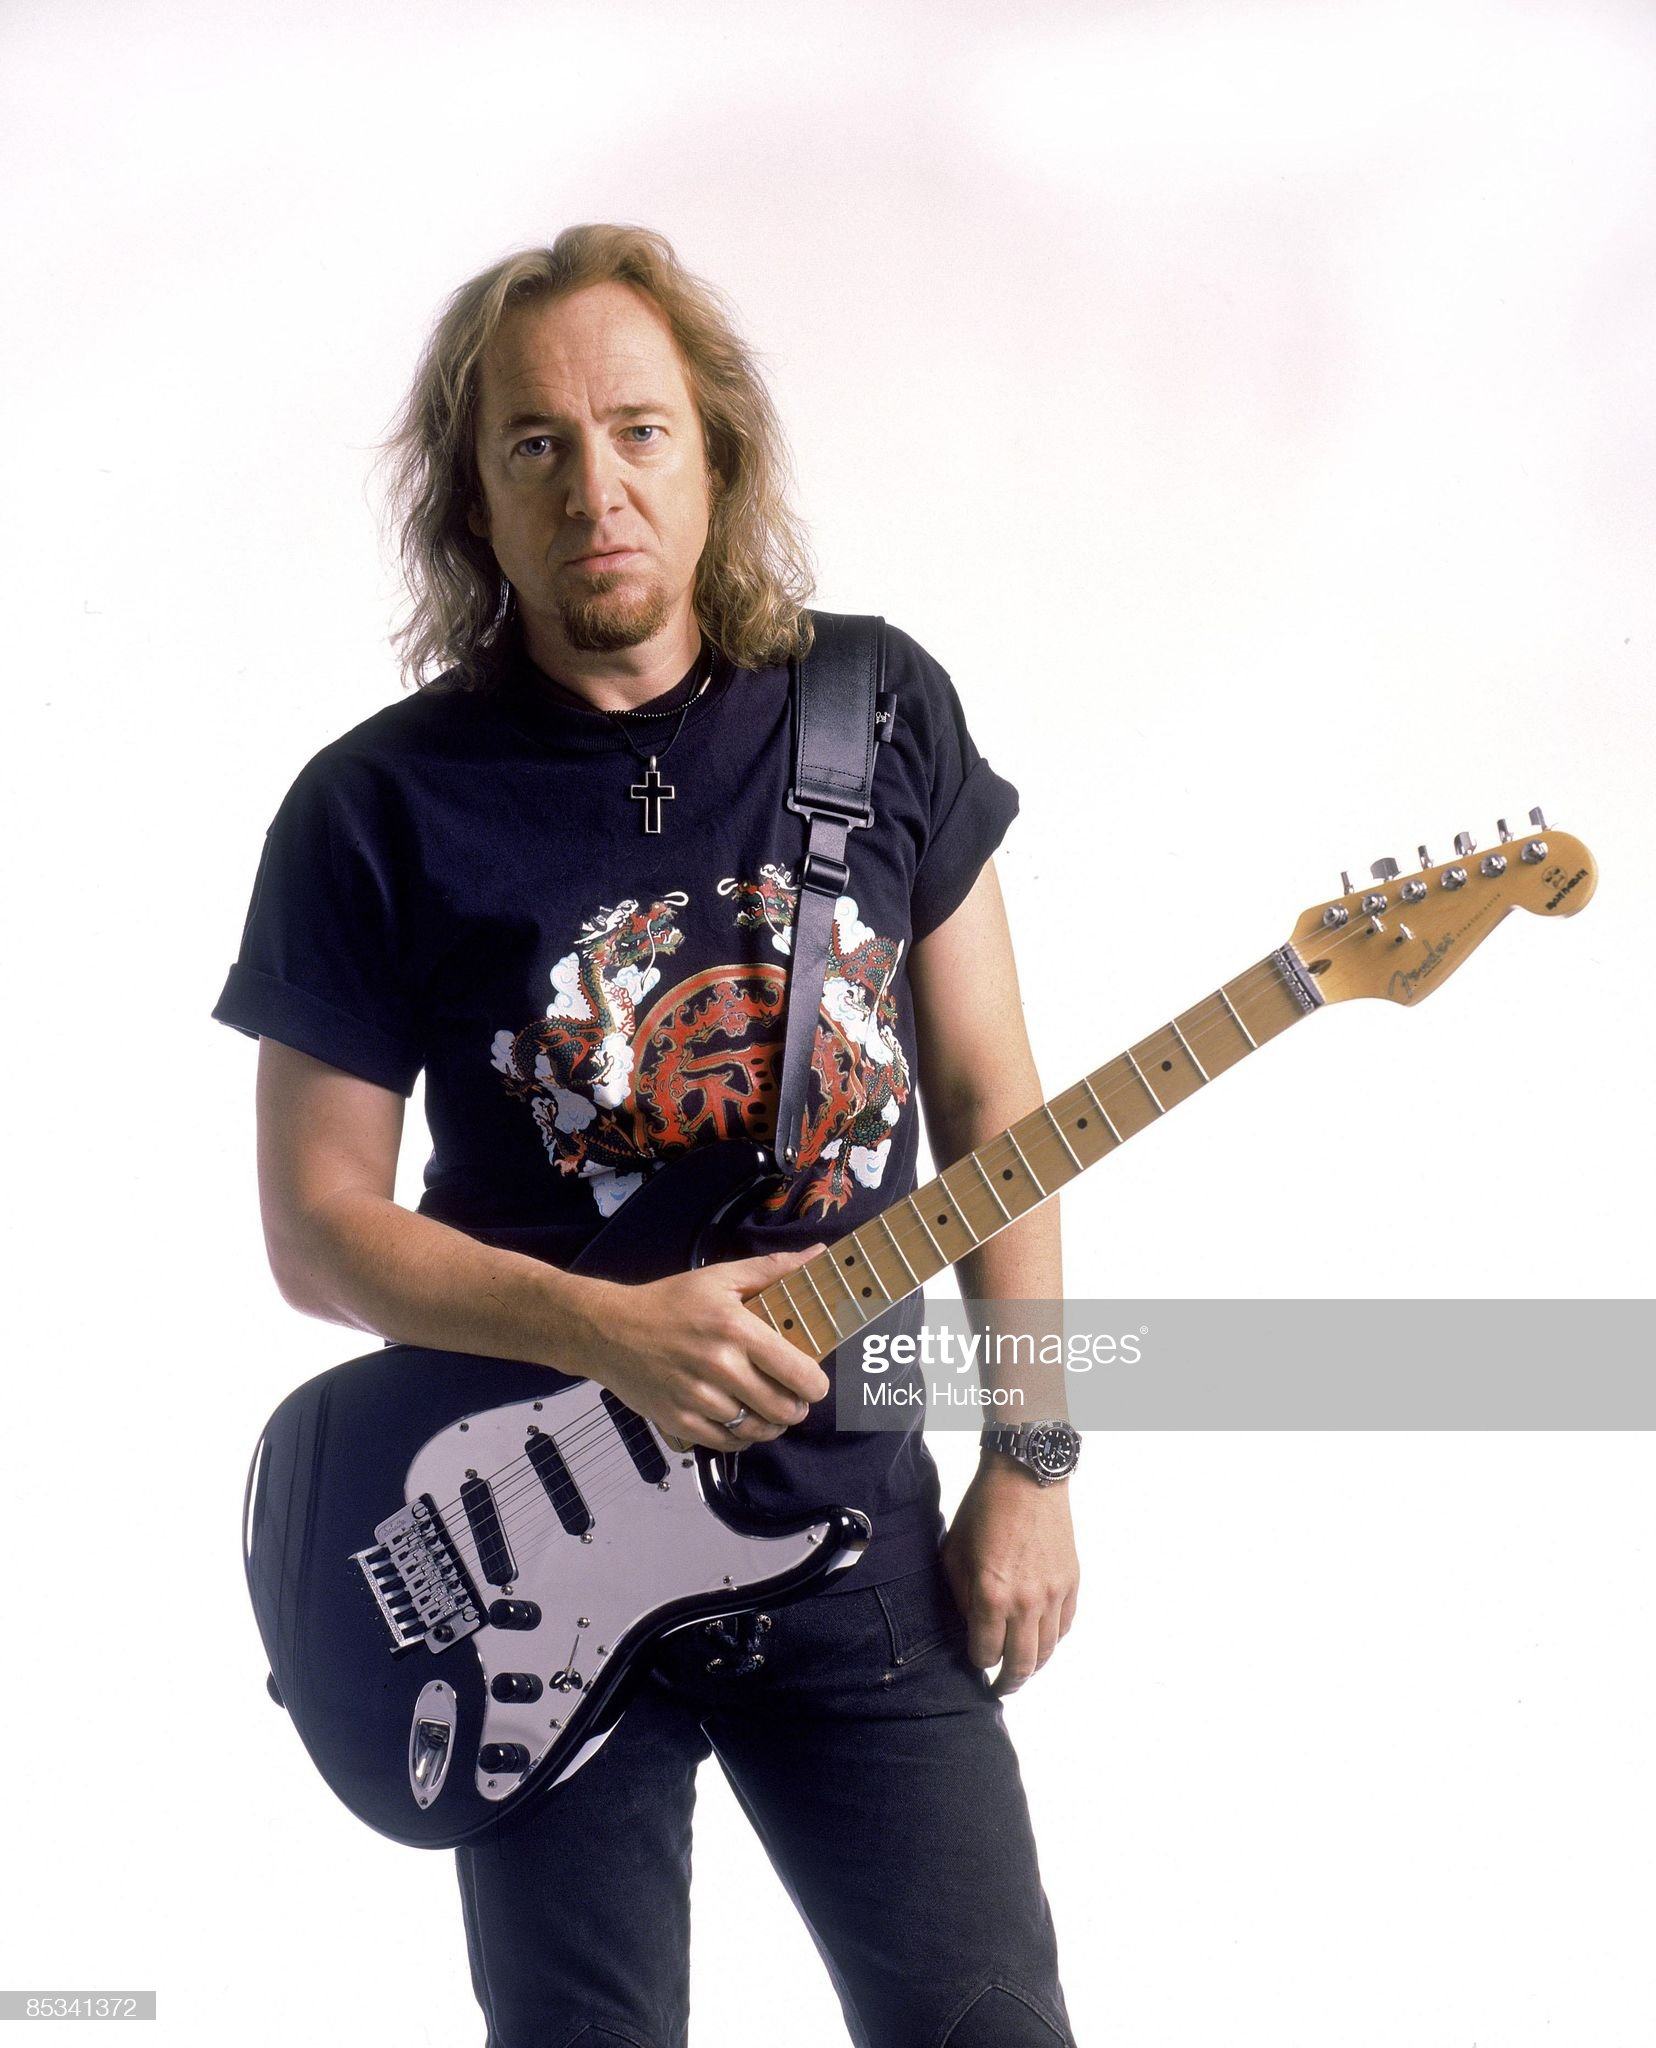 IRON MAIDEN - Page 13 Photo-of-adrian-smith-and-iron-maiden-adrian-smith-posed-studio-with-picture-id85341372?s=2048x2048